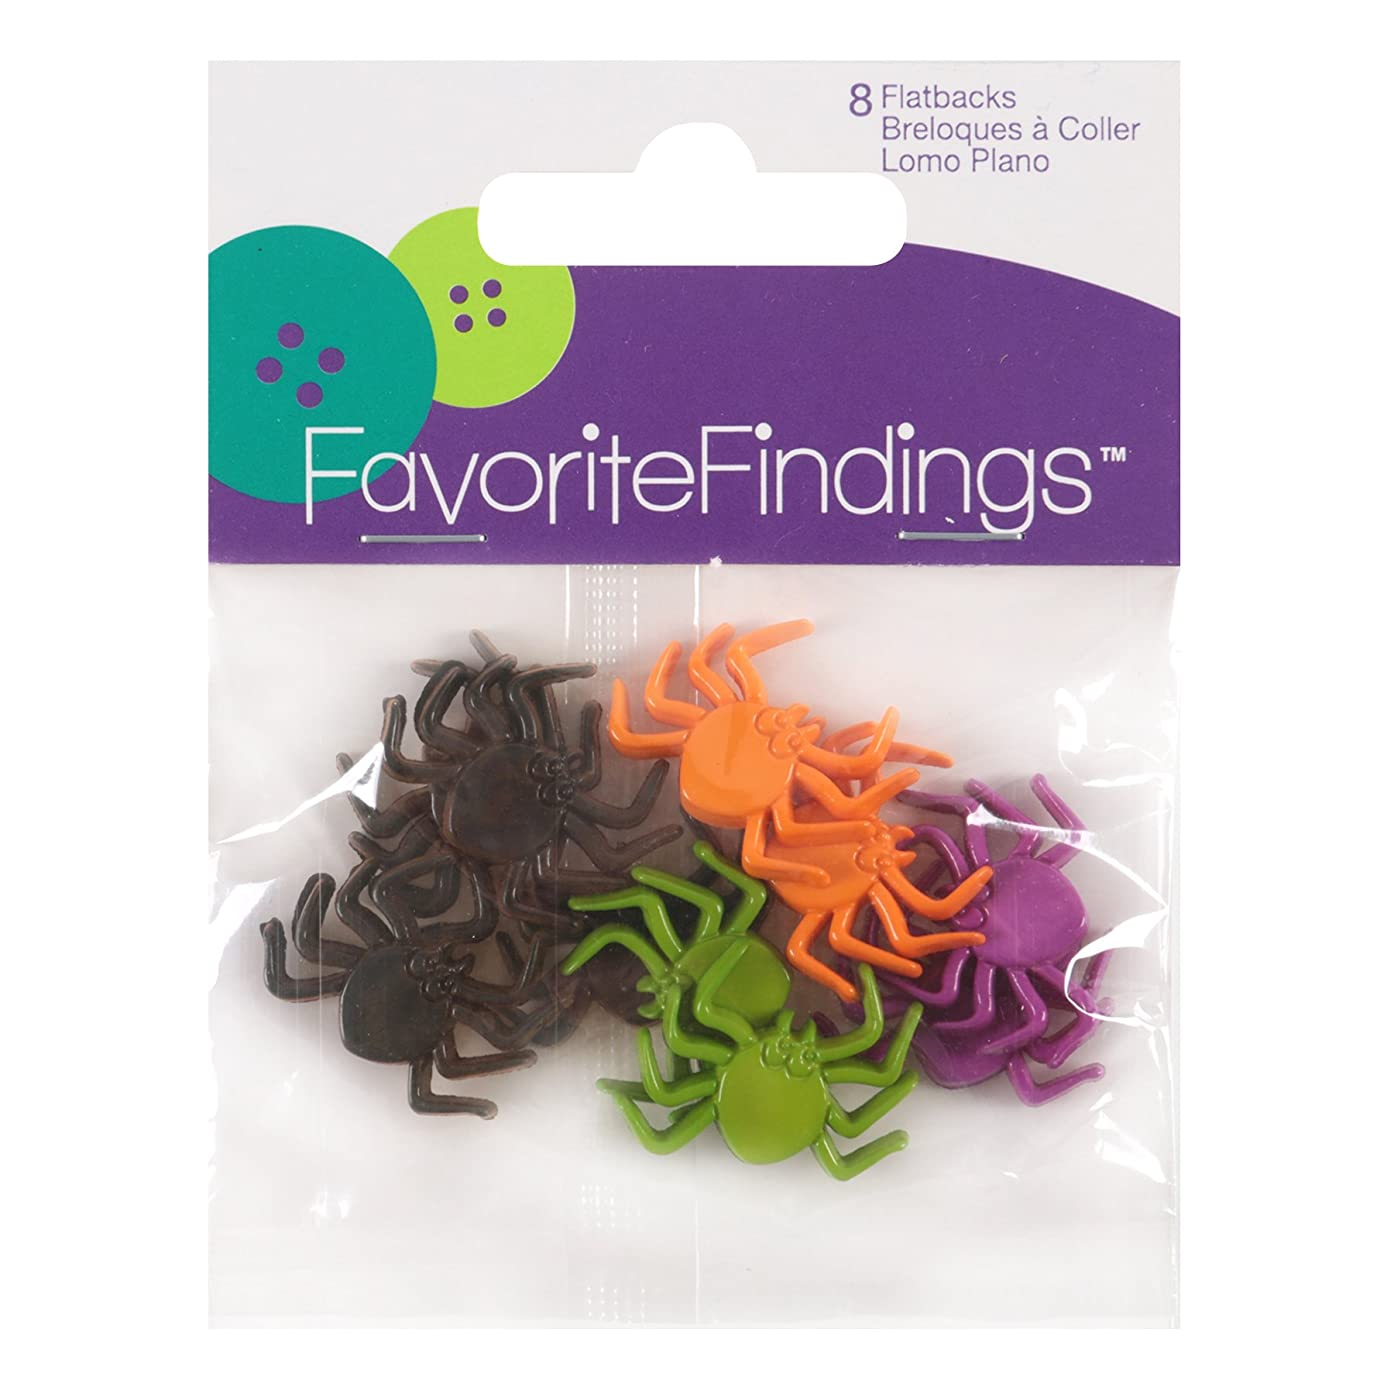 Blumenthal Lansing Buttons, Spider Shaped, For Sewing or Halloween Craft Projects, All One Shape and Size - Black, Purple, Orange, Green